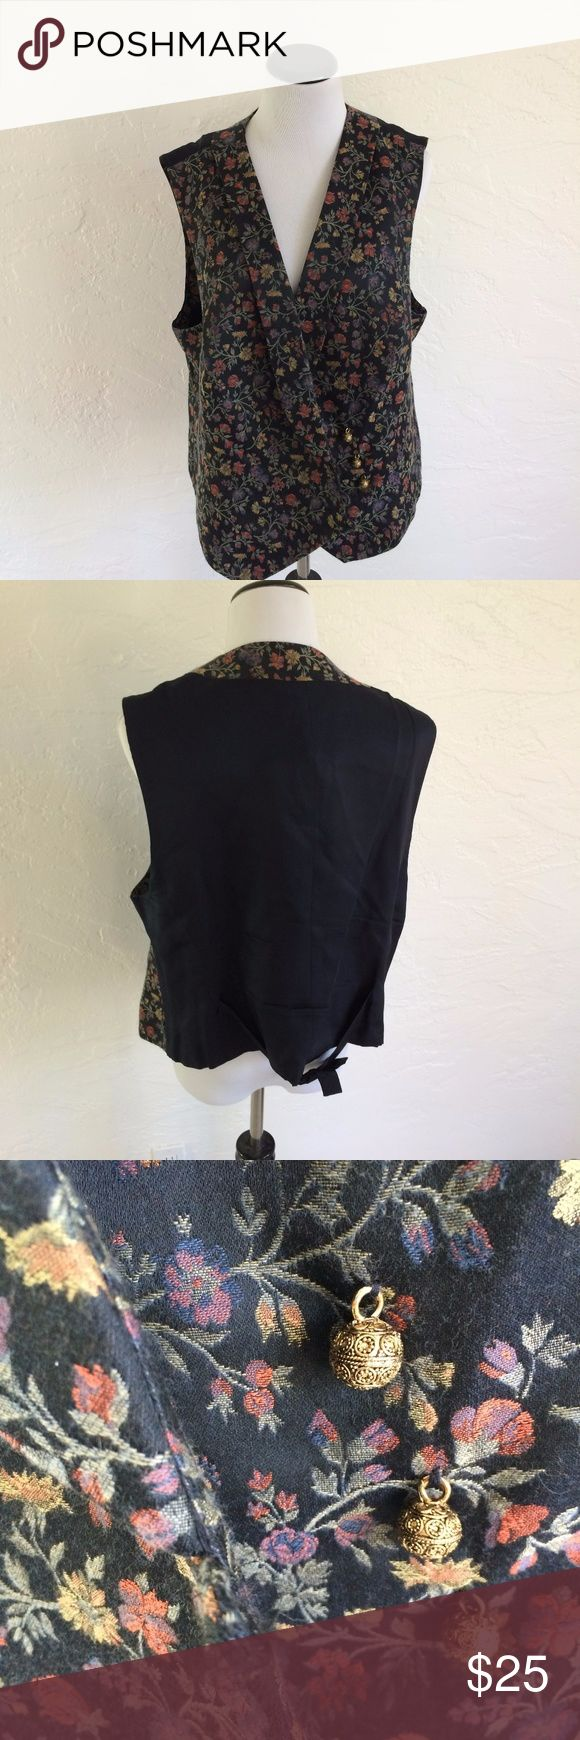 """ELLEN TRACY FLORAL VEST SIZE 18 BLACK AND FLORAL VEST, SIZE 18, COTTON AND POLYESTER, THREE GOLD COLORED CIRCLE METAL BUTTONS ON SIDE FOR CLOSURES, FABRIC TIE IN BACK.   MEASURED FLAT BUST 21"""" WAIST  23"""" LENGTH  28"""" Ellen Tracy Jackets & Coats Vests"""